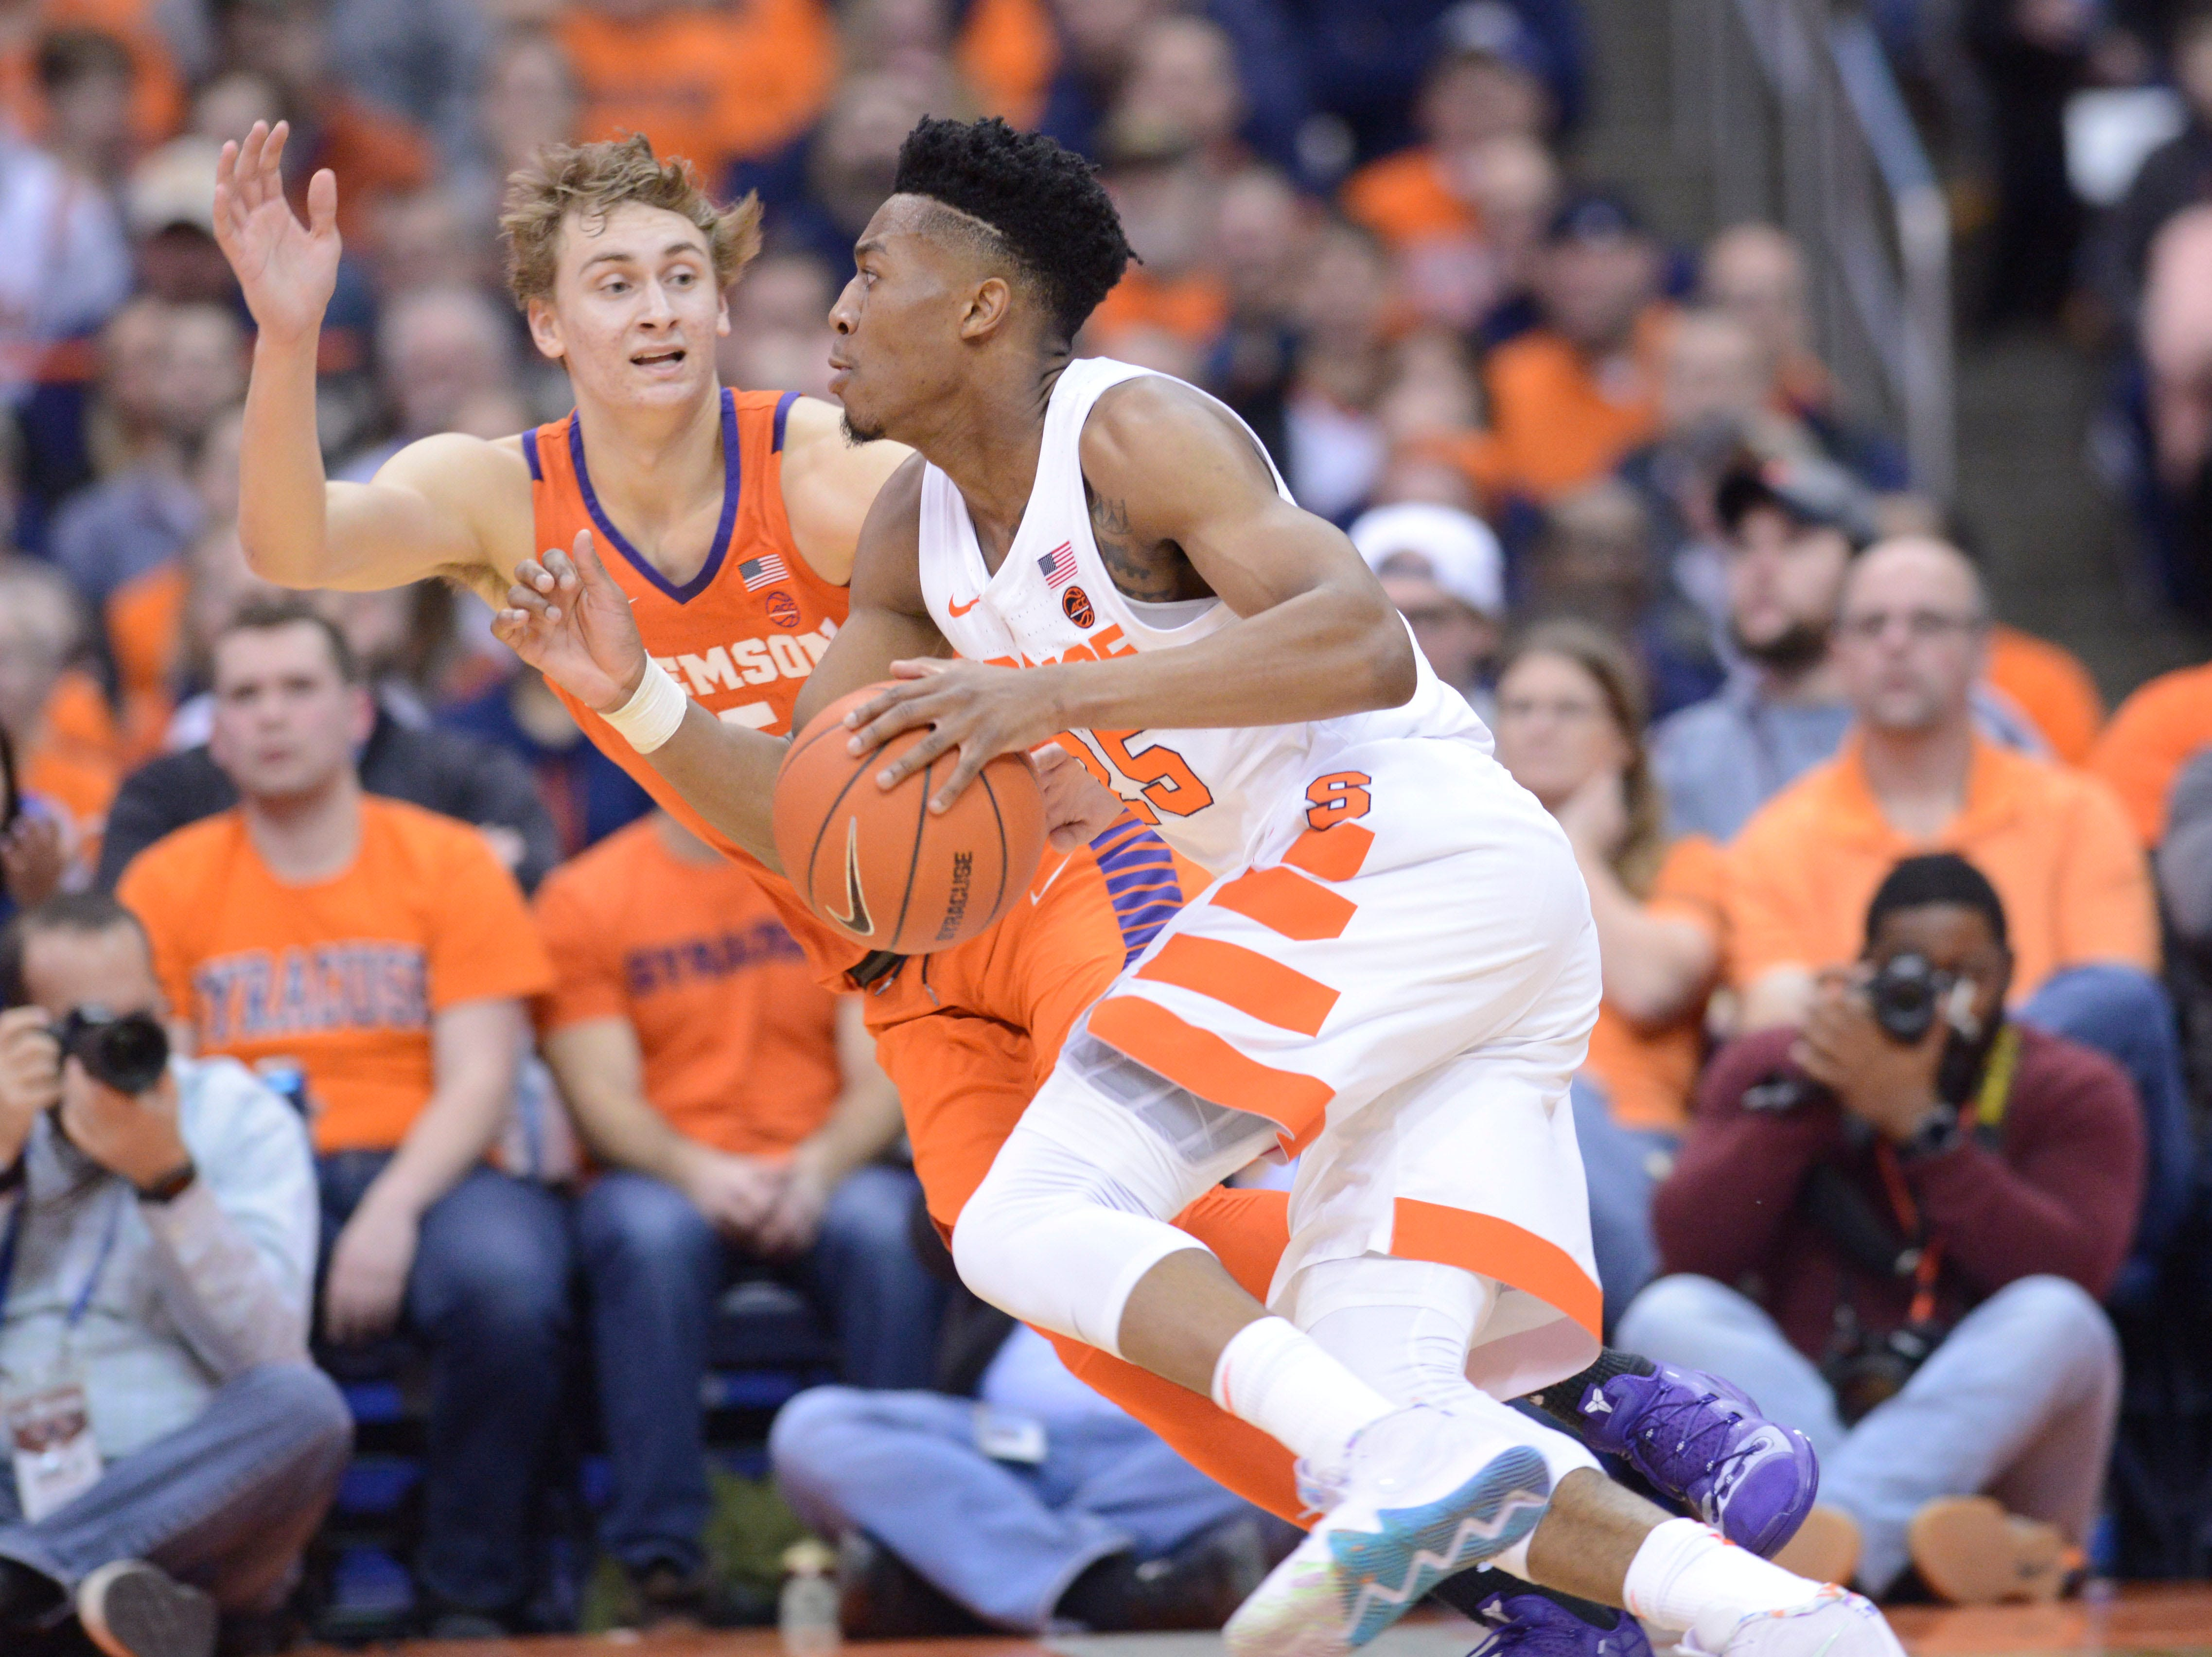 Jan 9, 2019; Syracuse, NY, USA; Syracuse Orange guard Tyus Battle (25) drives the ball against Clemson Tigers forward Hunter Tyson (5) during the first half at the Carrier Dome.